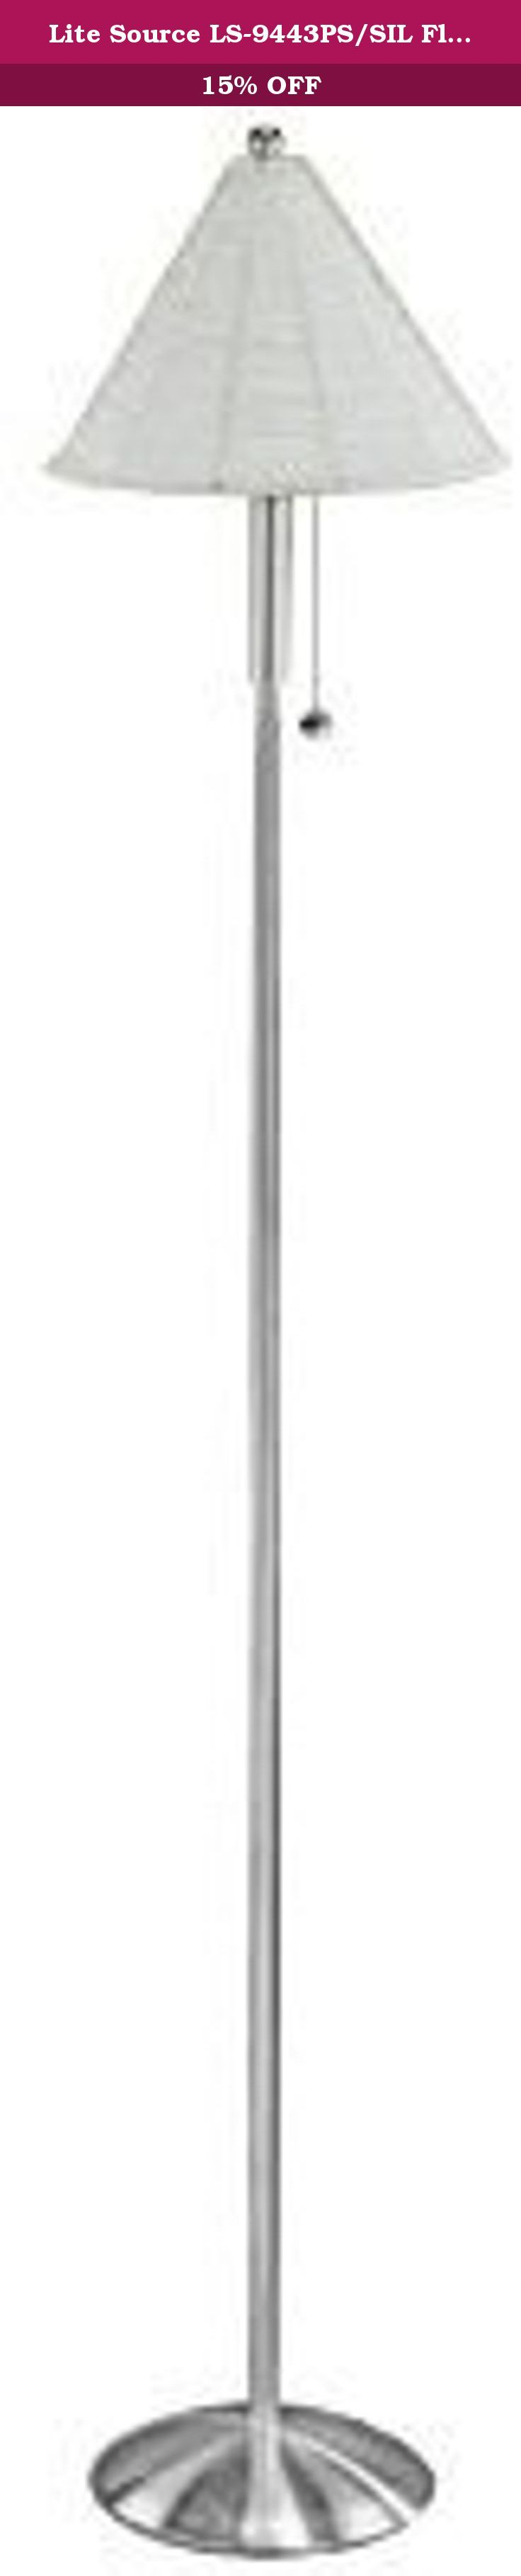 Lite Source LS-9443PS/SIL Floor Lamp with Silver Rattan Shades, Metal Finish. Lite Source has an exceptional line of quality products aimed to please even the most discerning of consumers. Relish in the design of this 1 light Floor Lamp; from the details in the Silver Rattan, to the double coated metal finish, this Floor Lamp is not only durable, but a tastefully elegant showpiece.